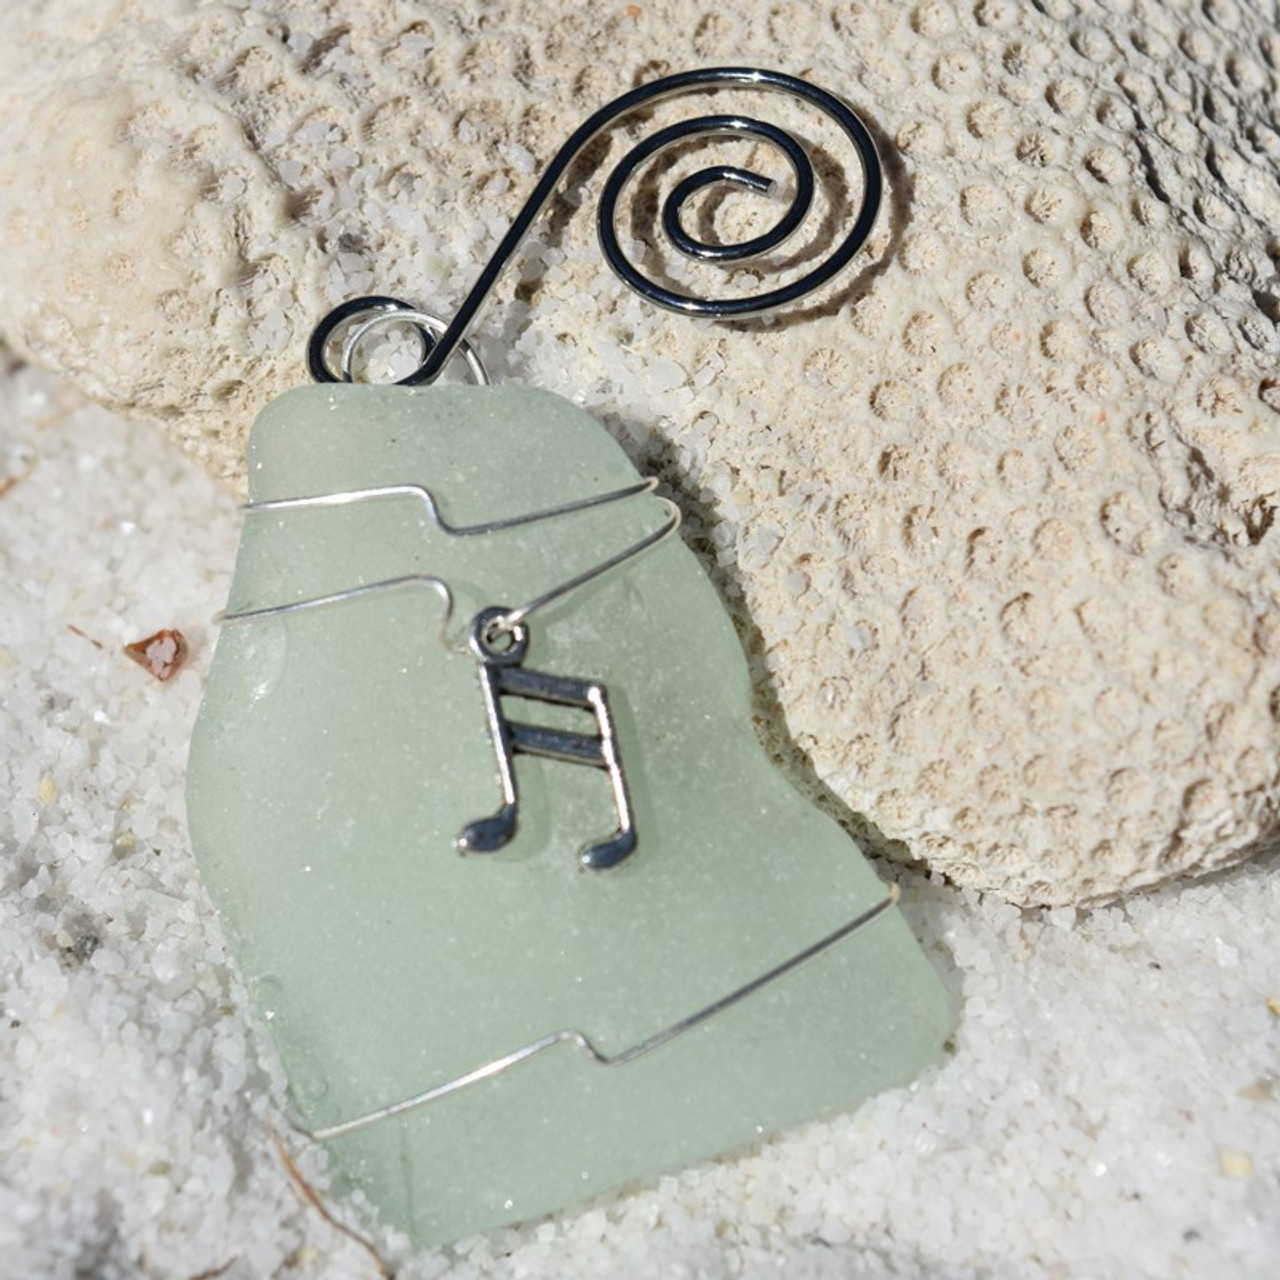 Musical Note Charm on a Surf Tumbled Sea Glass Ornament - Choose Your Color Sea Glass Frosted, Green, and Brown. - Made to Order